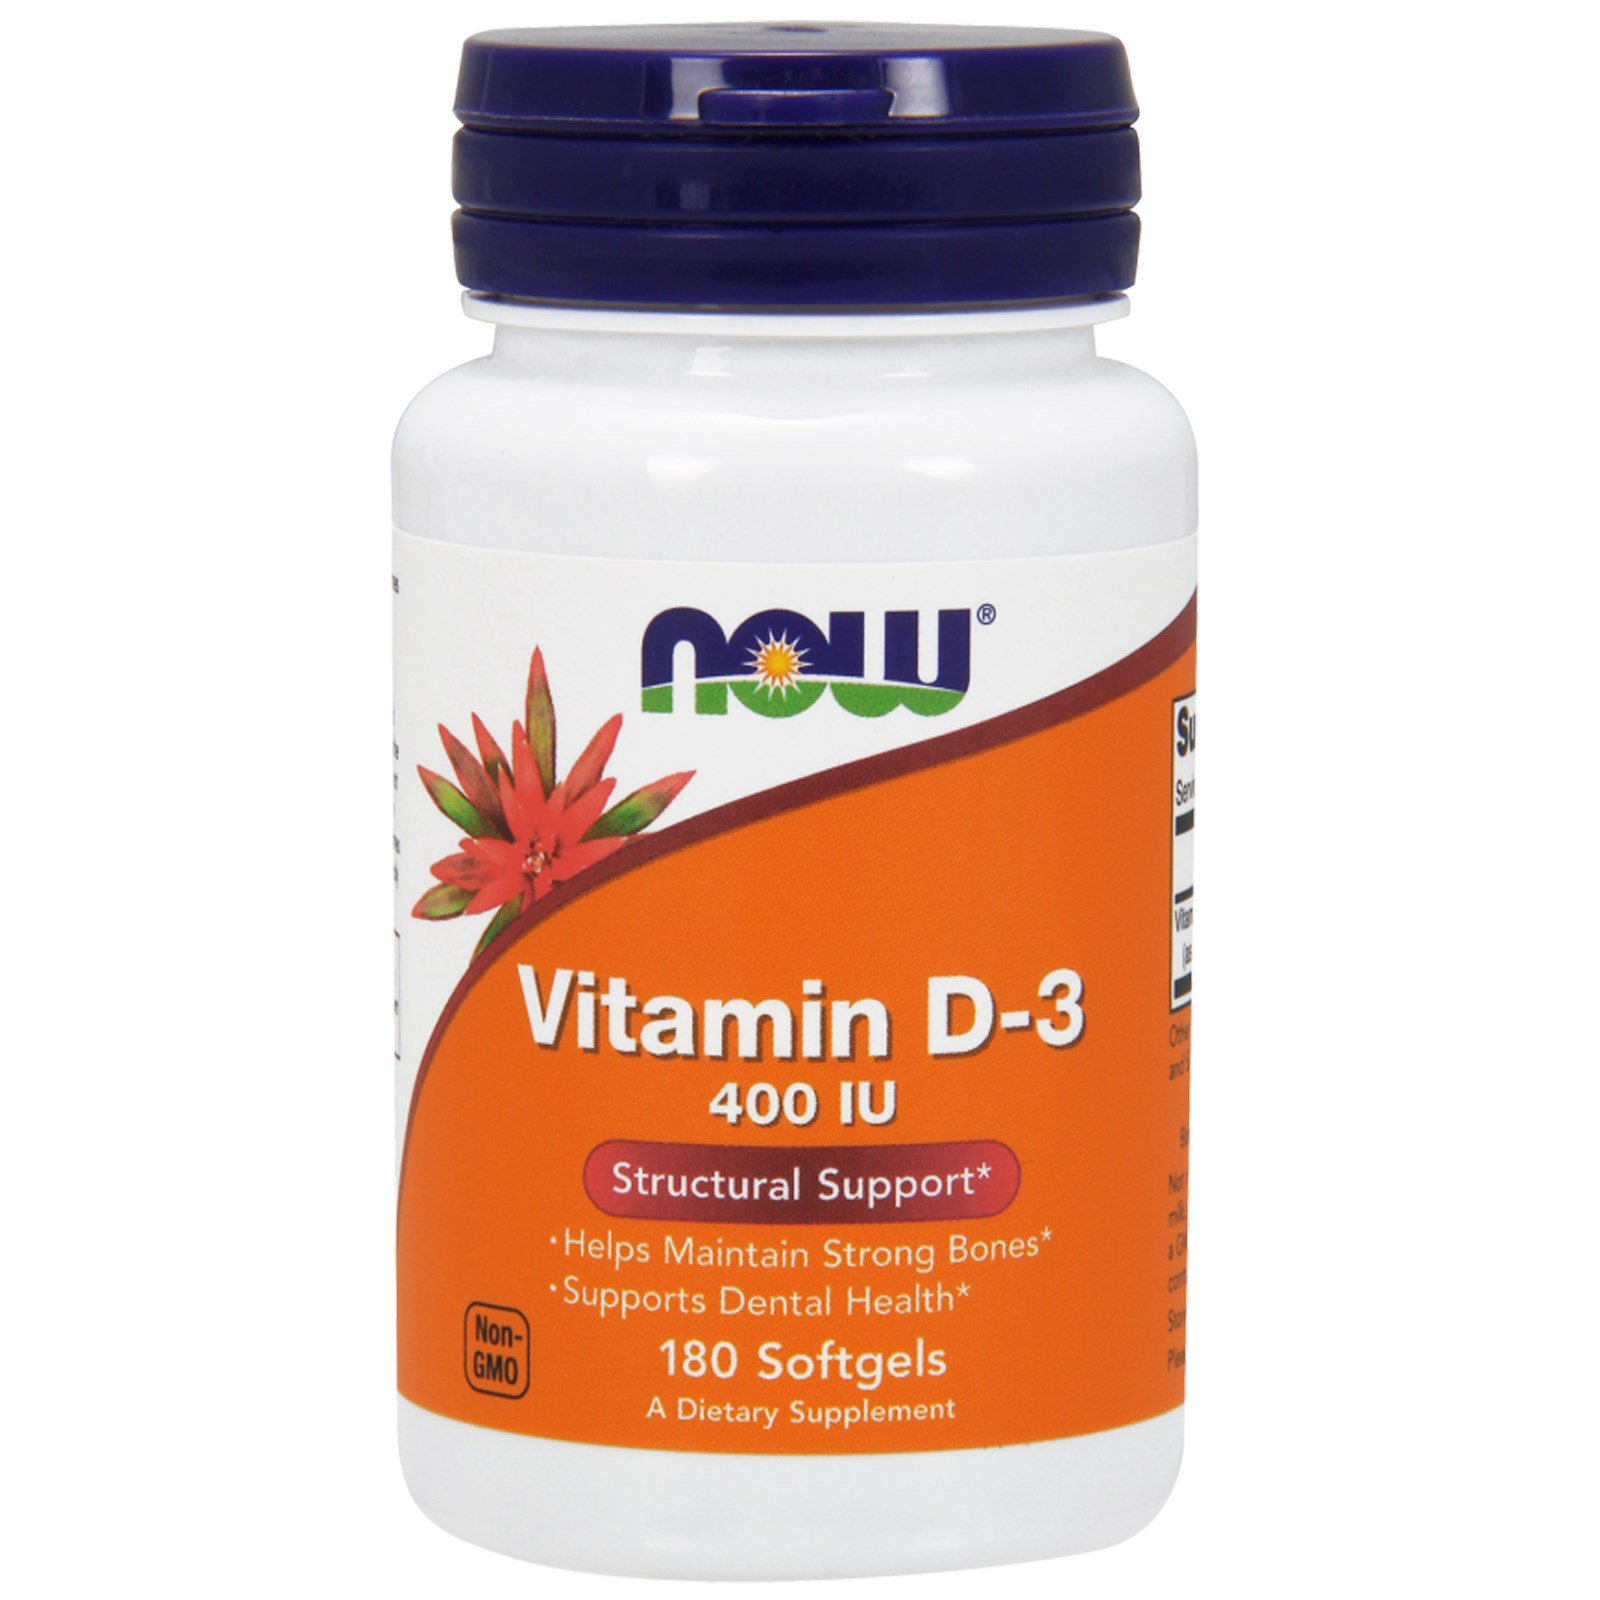 Vitamin D-3 by Now Foods